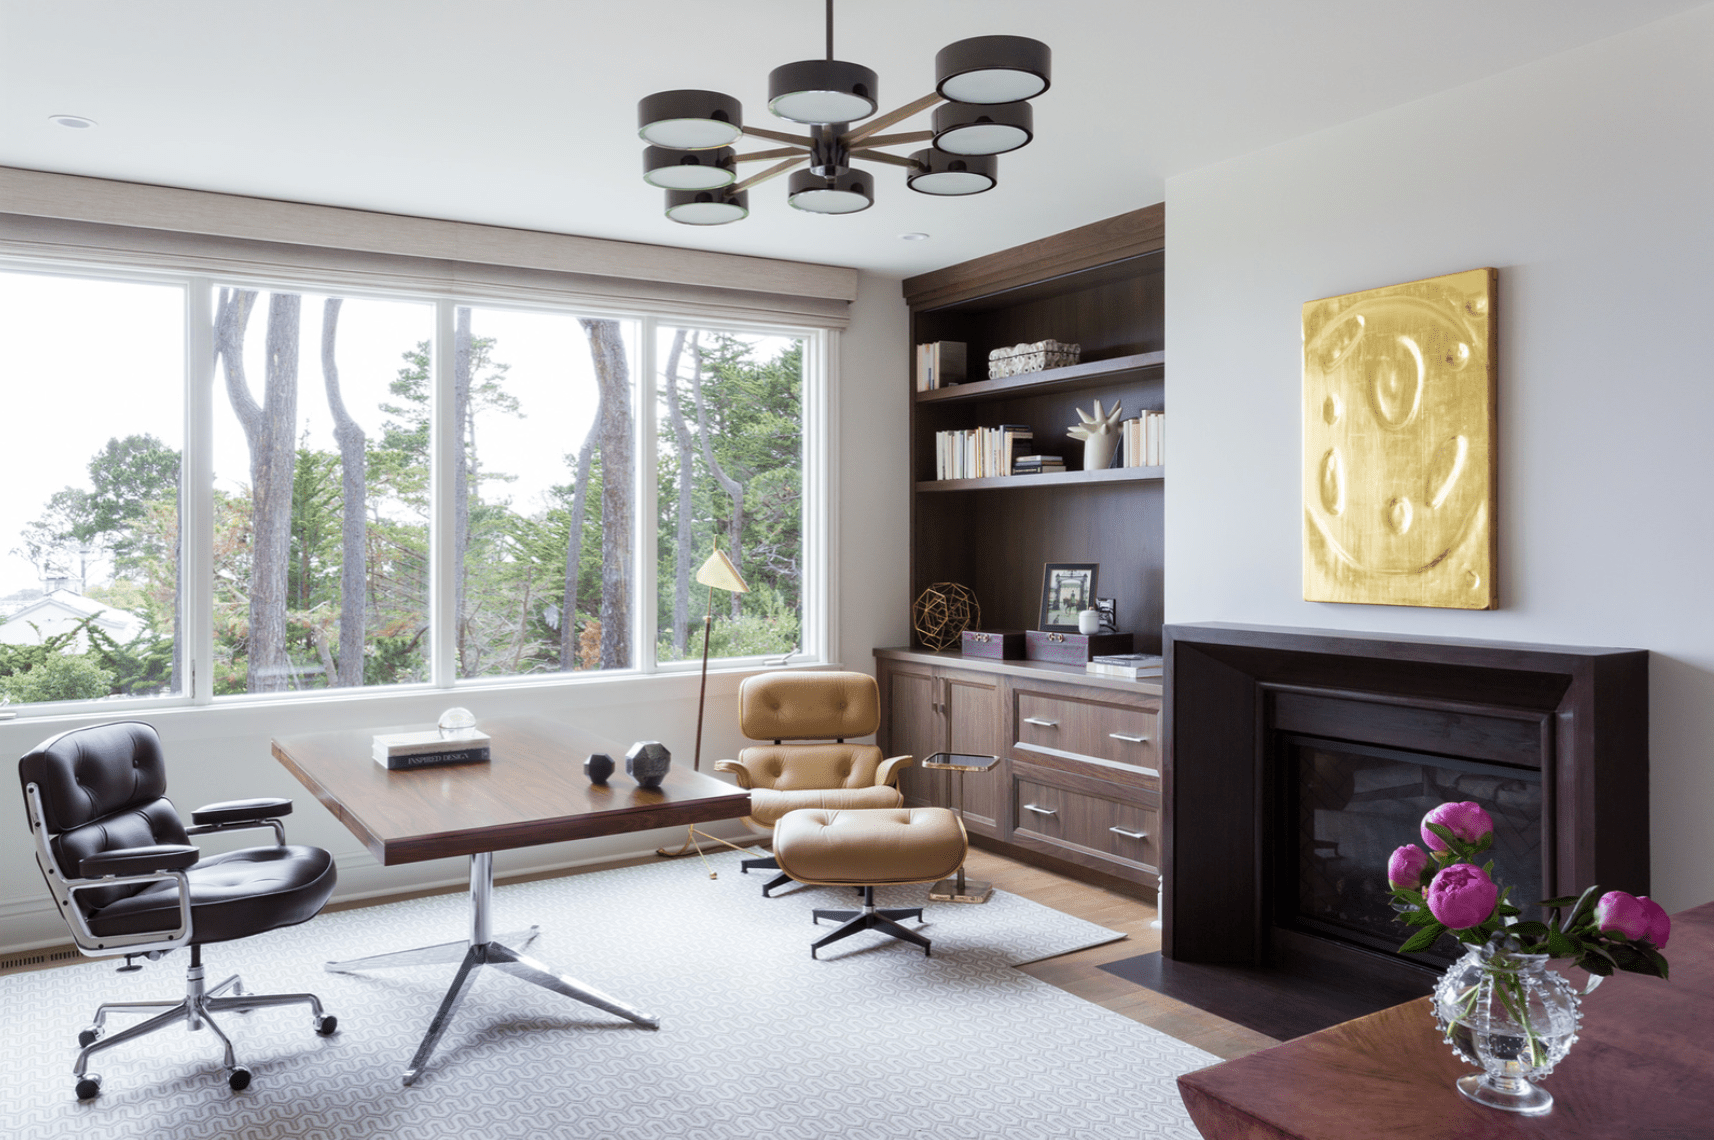 A wooden desk flanked by two chairs: a rolling desk chair and an upholstered lounge chair